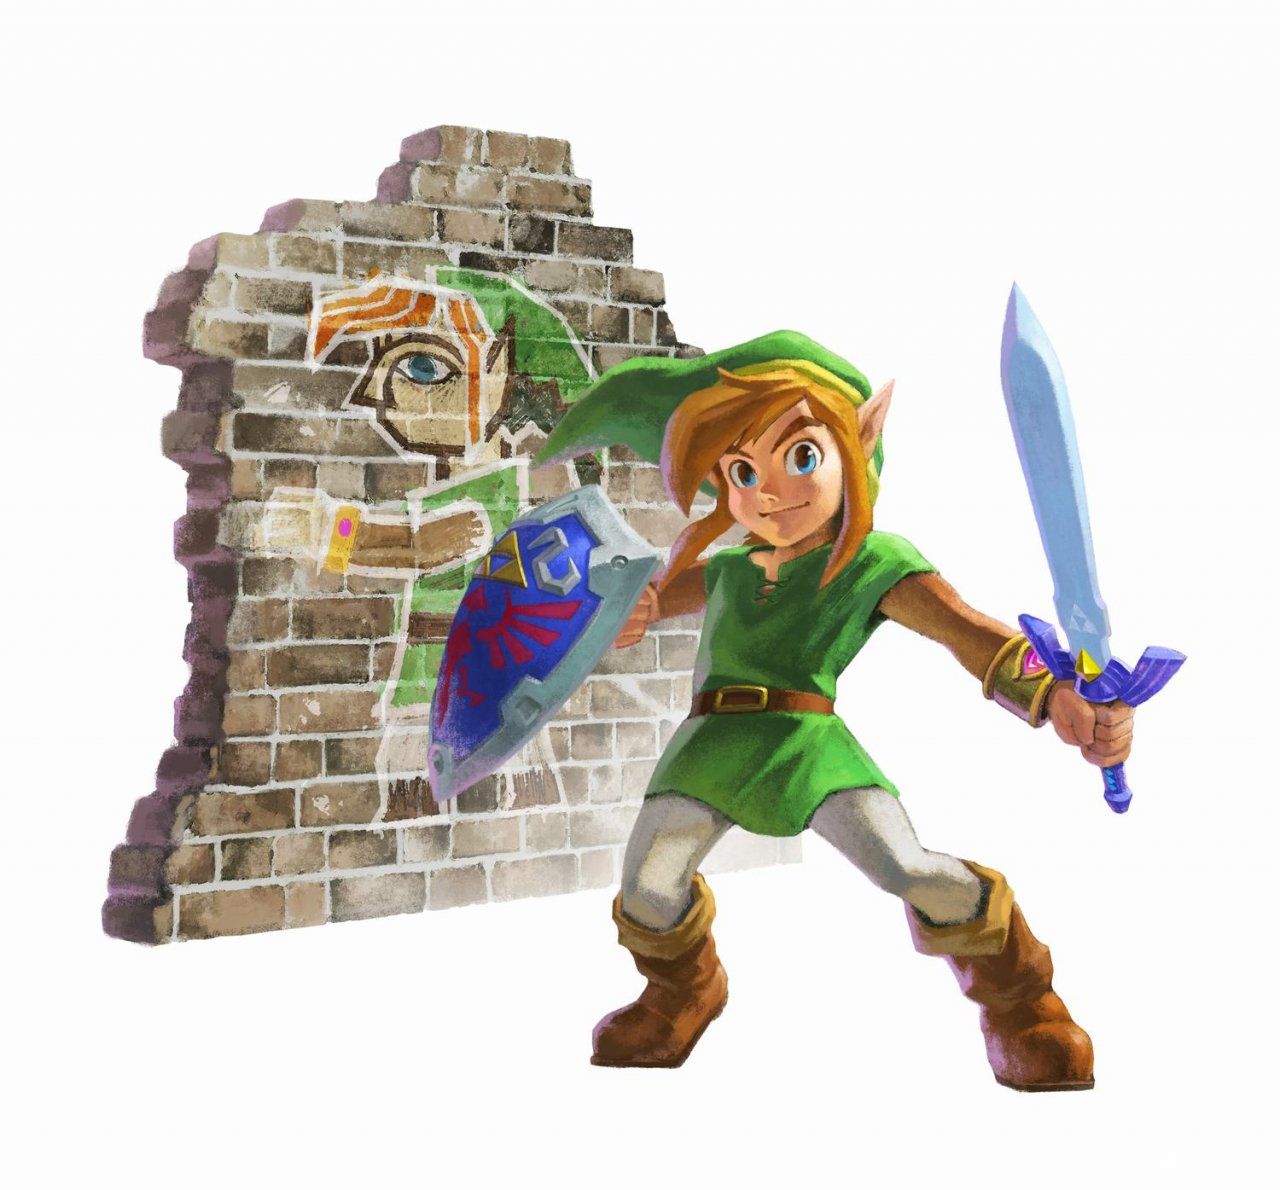 Comparativas animadas de ayer y hoy… The Legend of Zelda [Video]